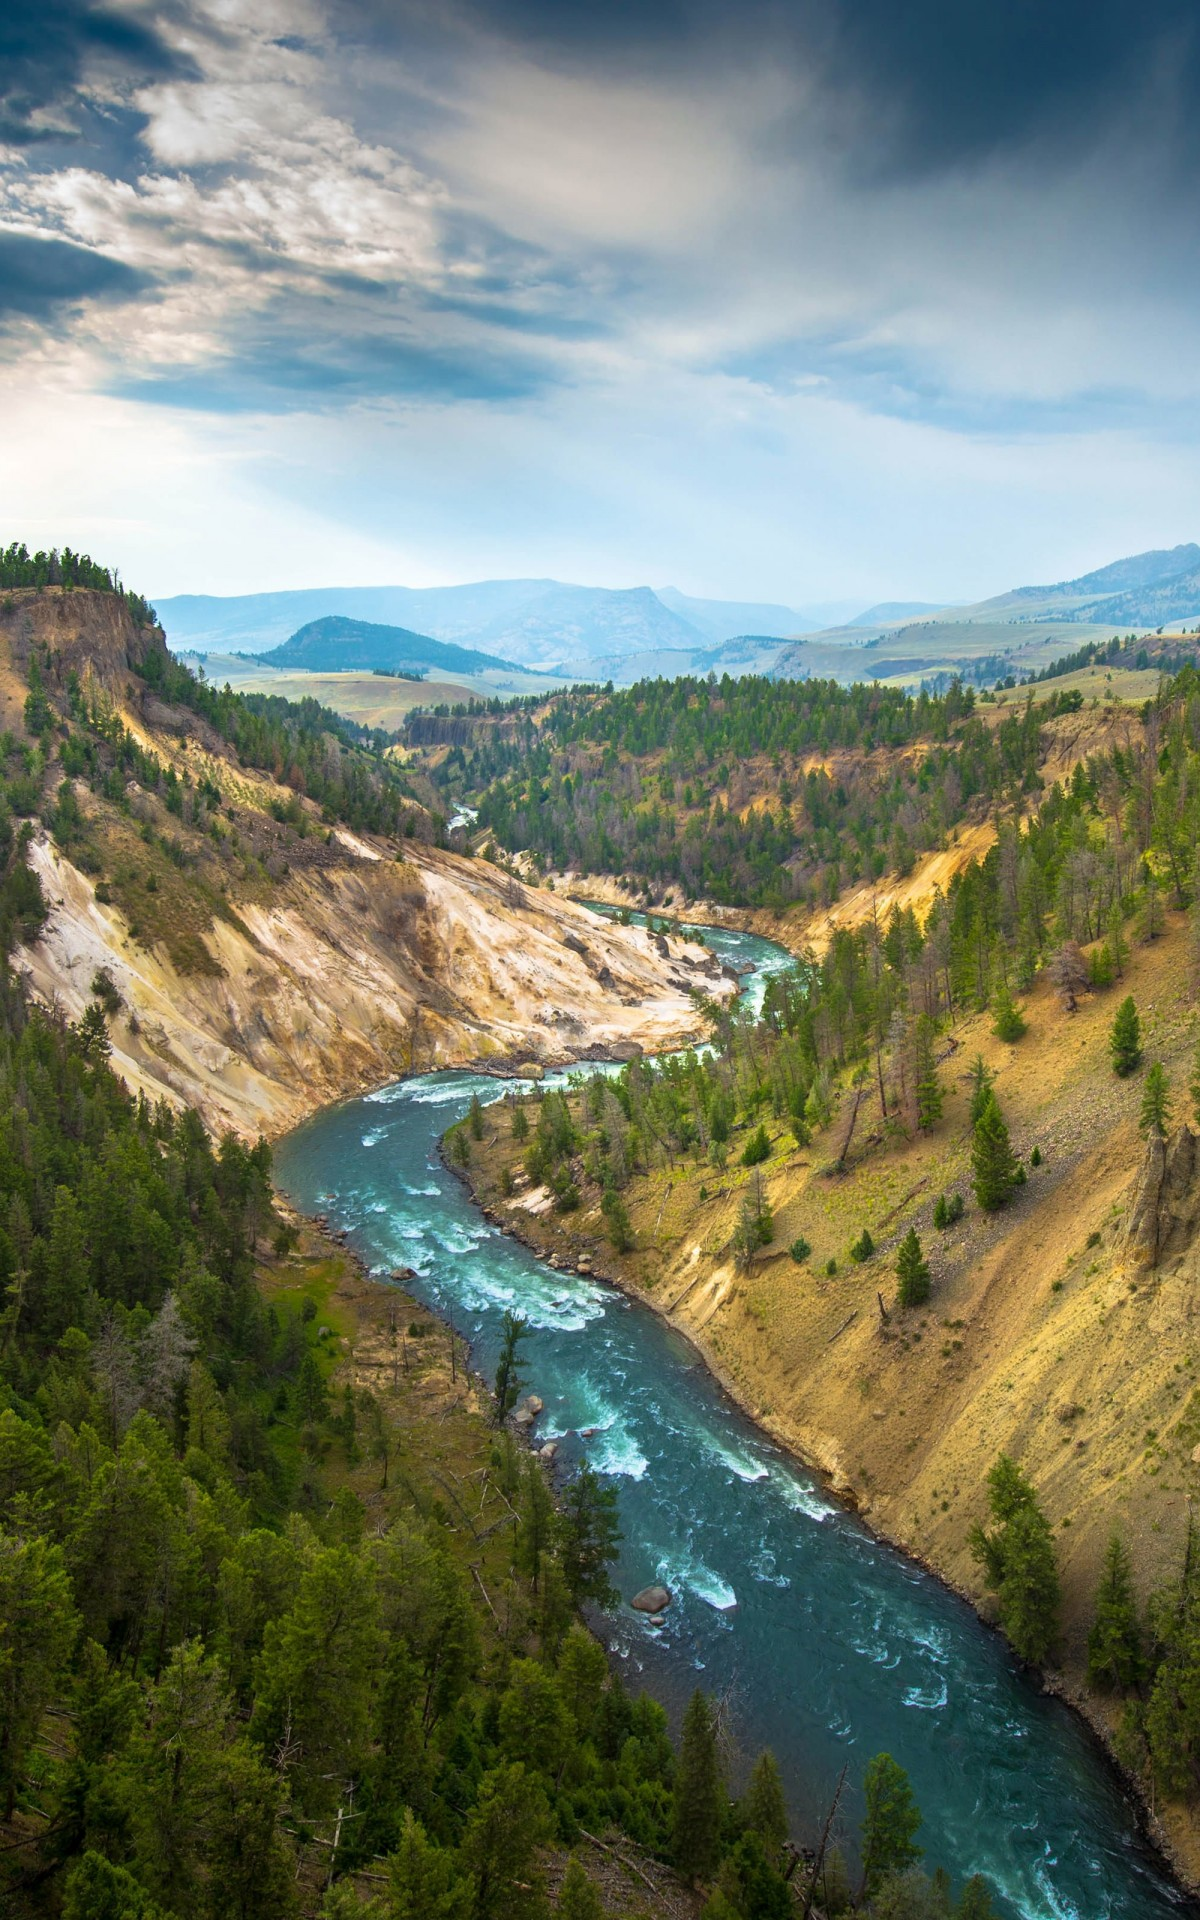 The River, Grand Canyon of Yellowstone National Park, USA Wallpaper for Amazon Kindle Fire HDX